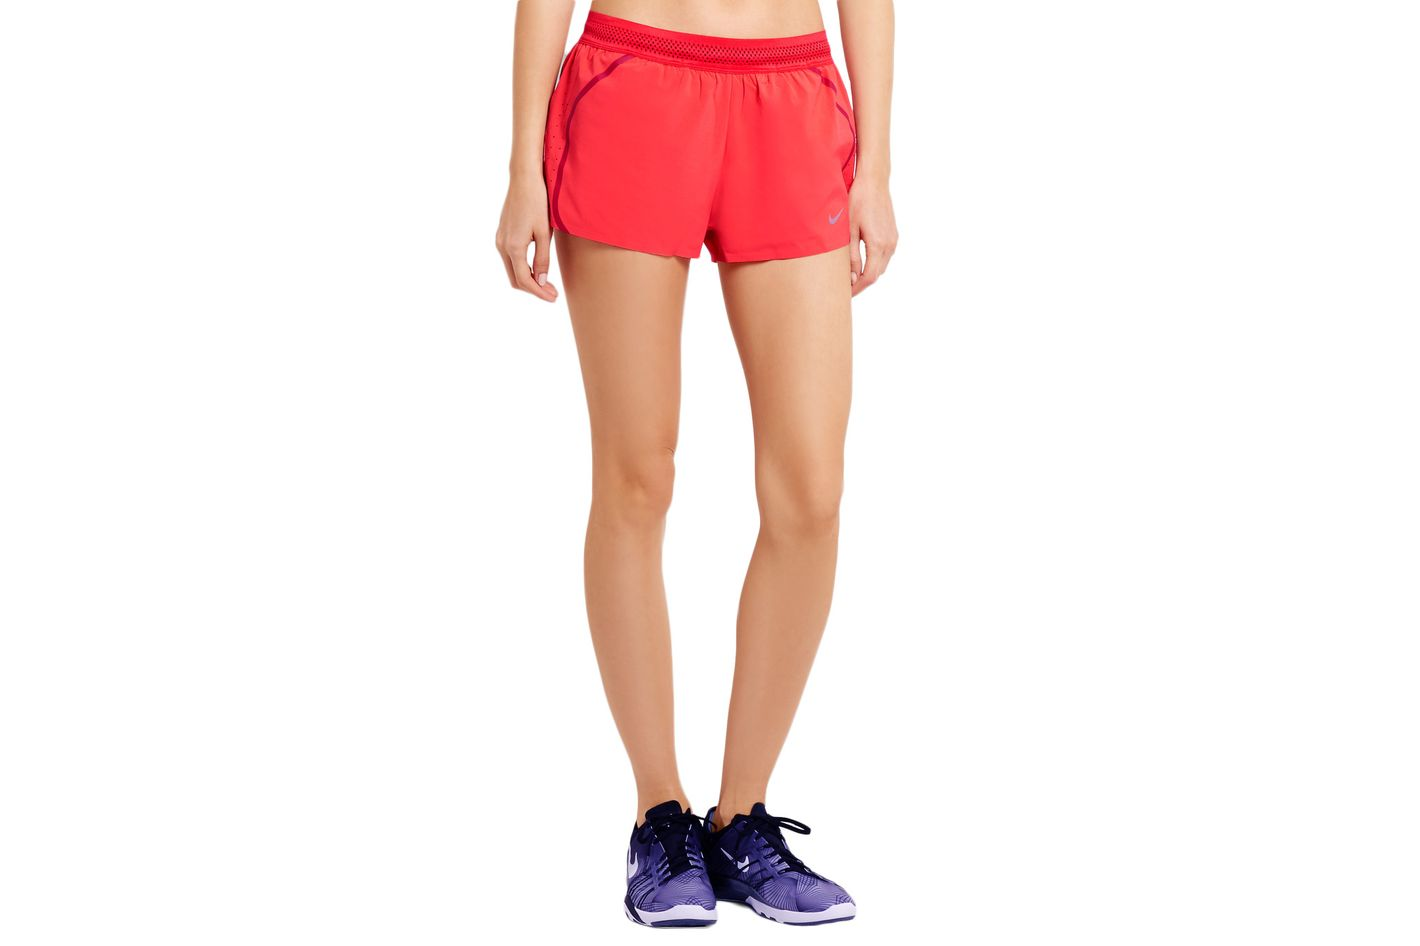 Nike Aeroswift Dri-Fit Shorts